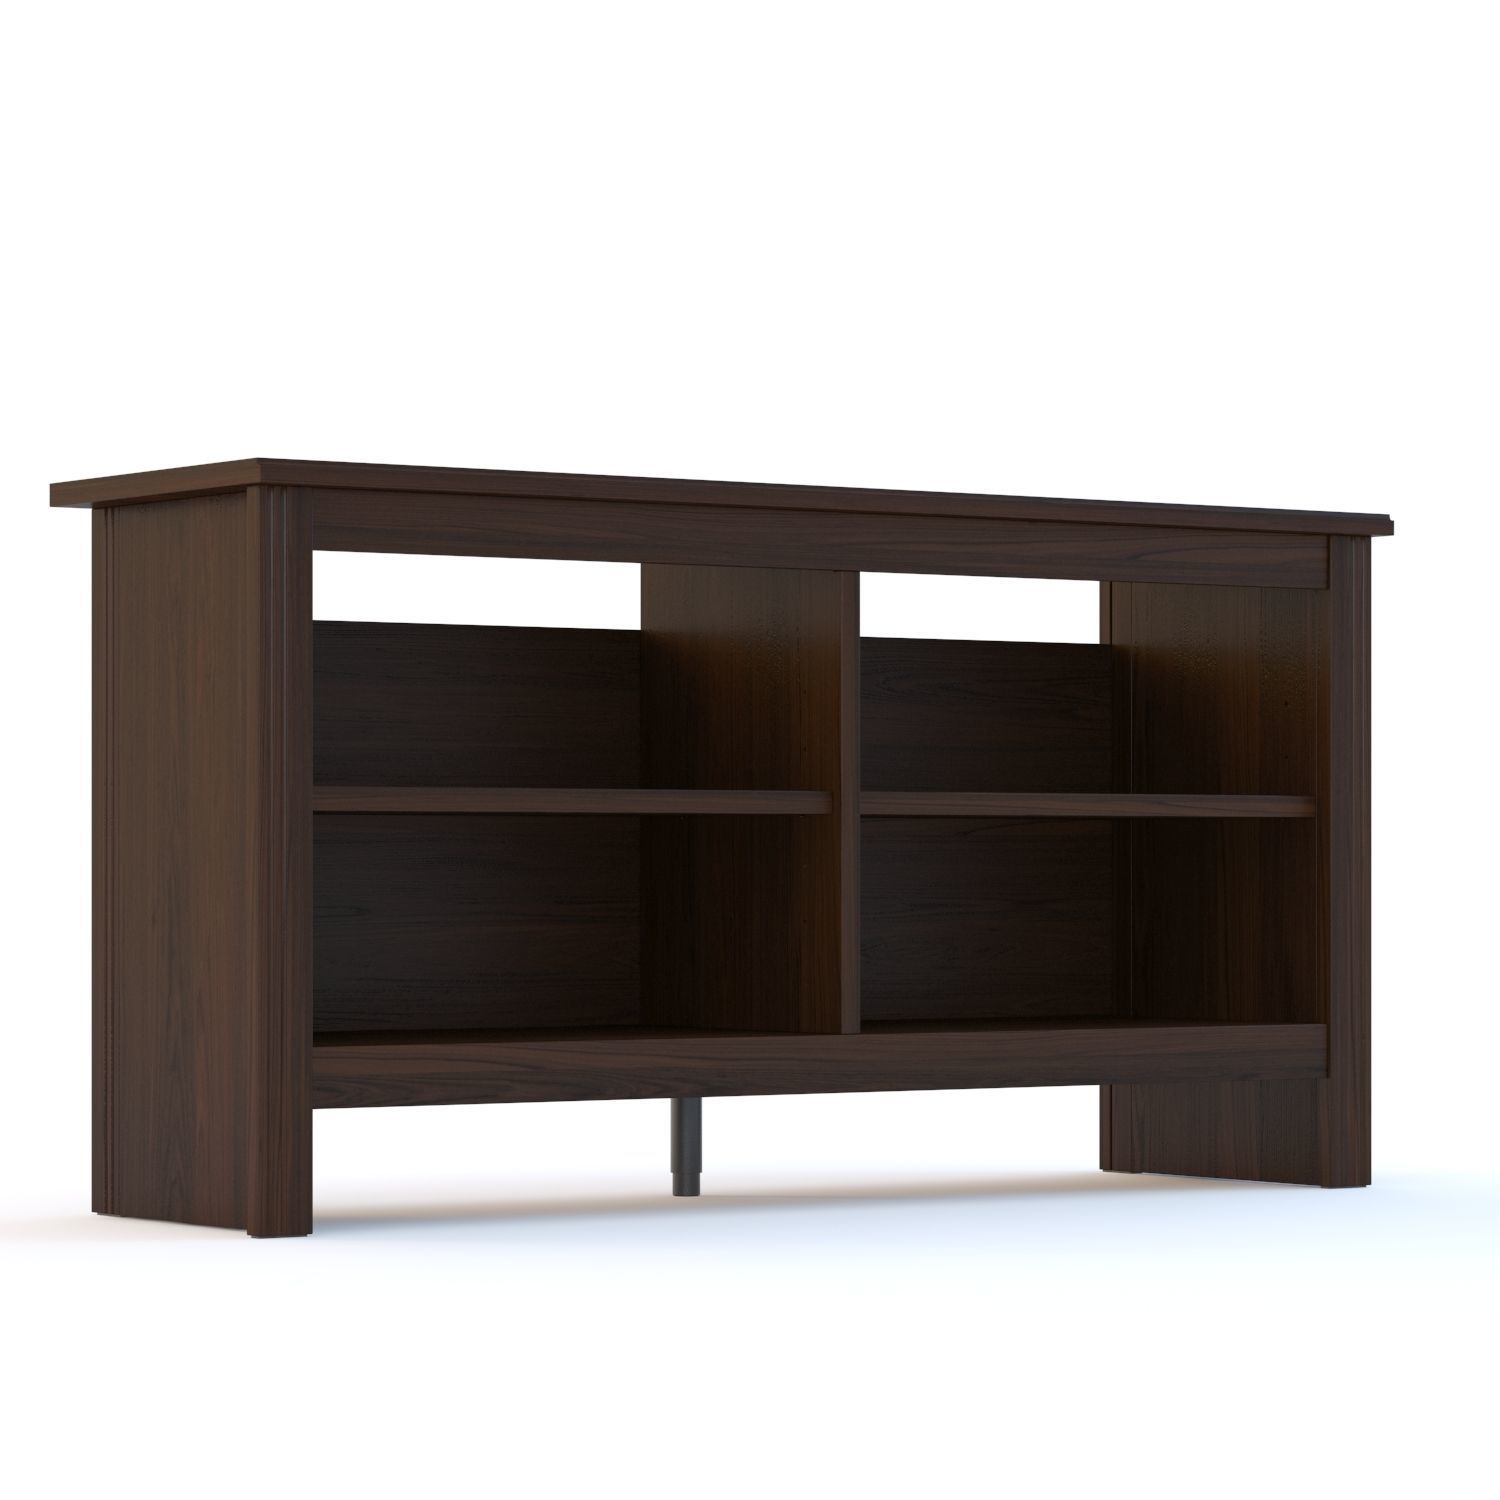 Ikea Tv Sideboard Ikea Brusali Tv 3d Model